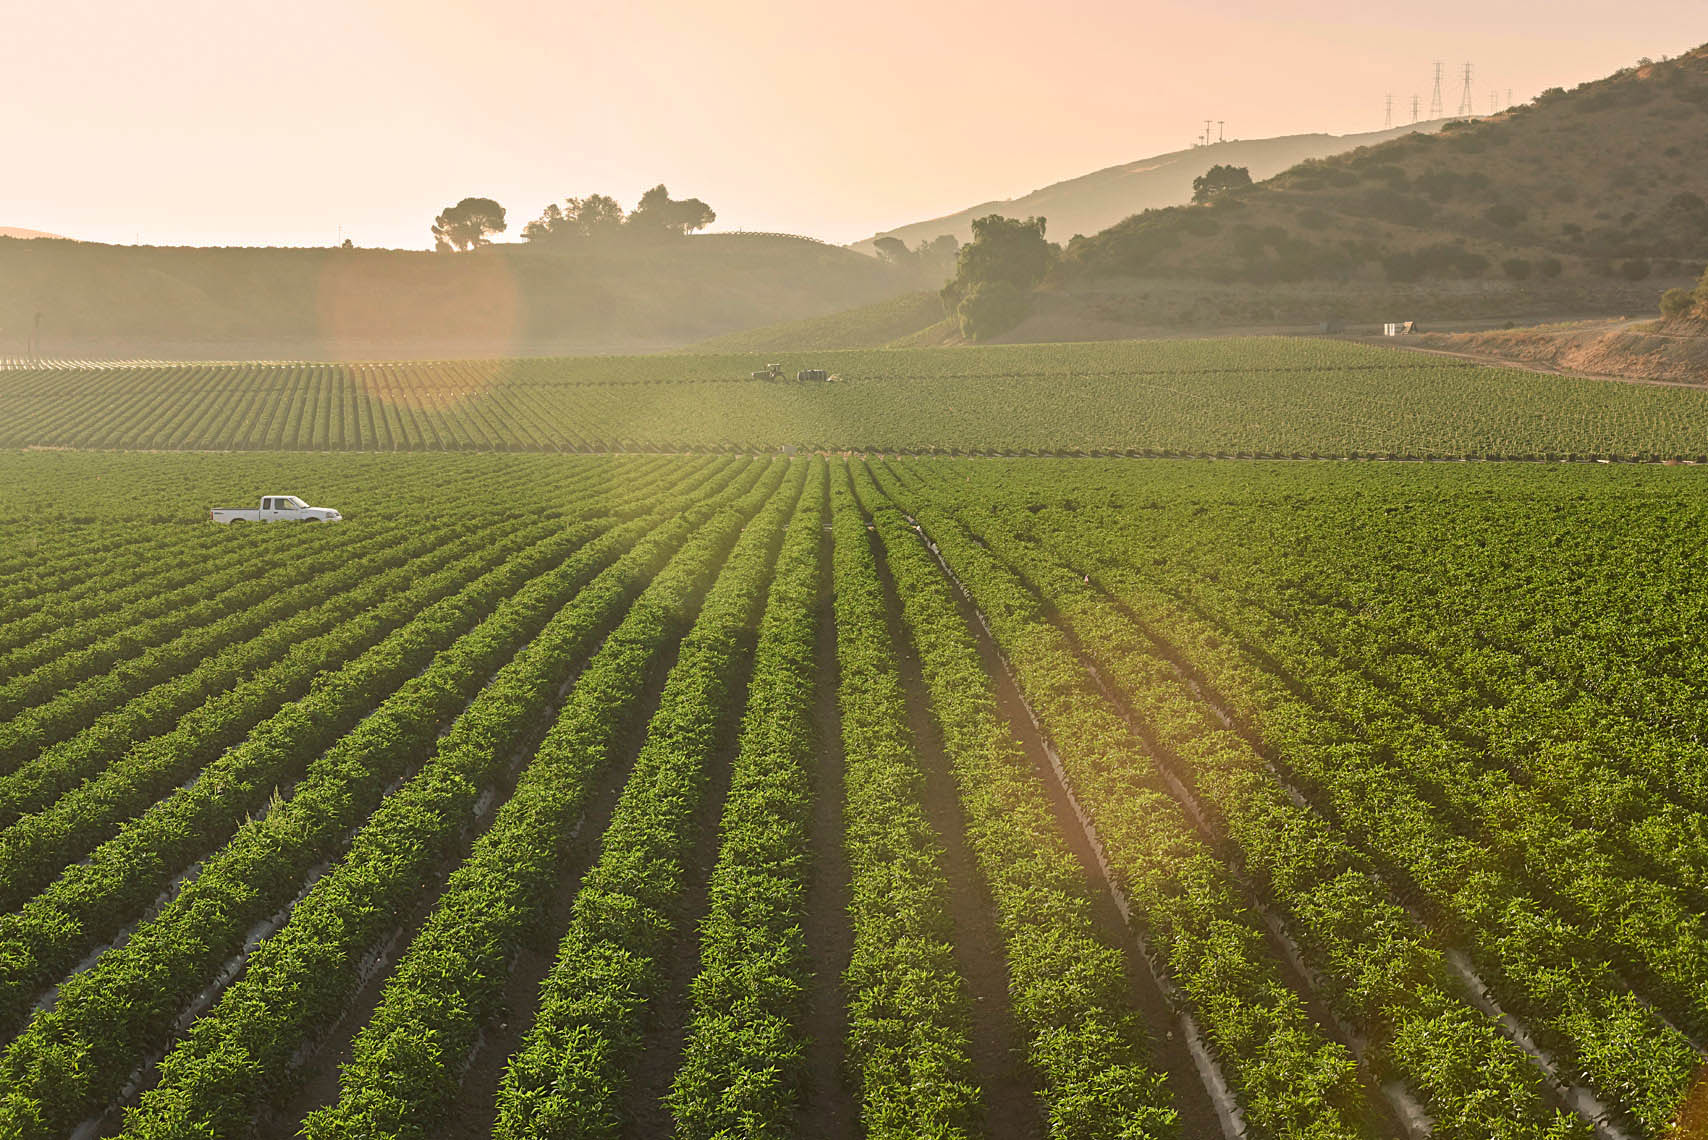 Bell-pepper-row-crops-at-sunriseBell-pepper-farm-field-at-sunset-with-mountains-in-the-background-by-California-landscape-photographer-Joe-Atlas...